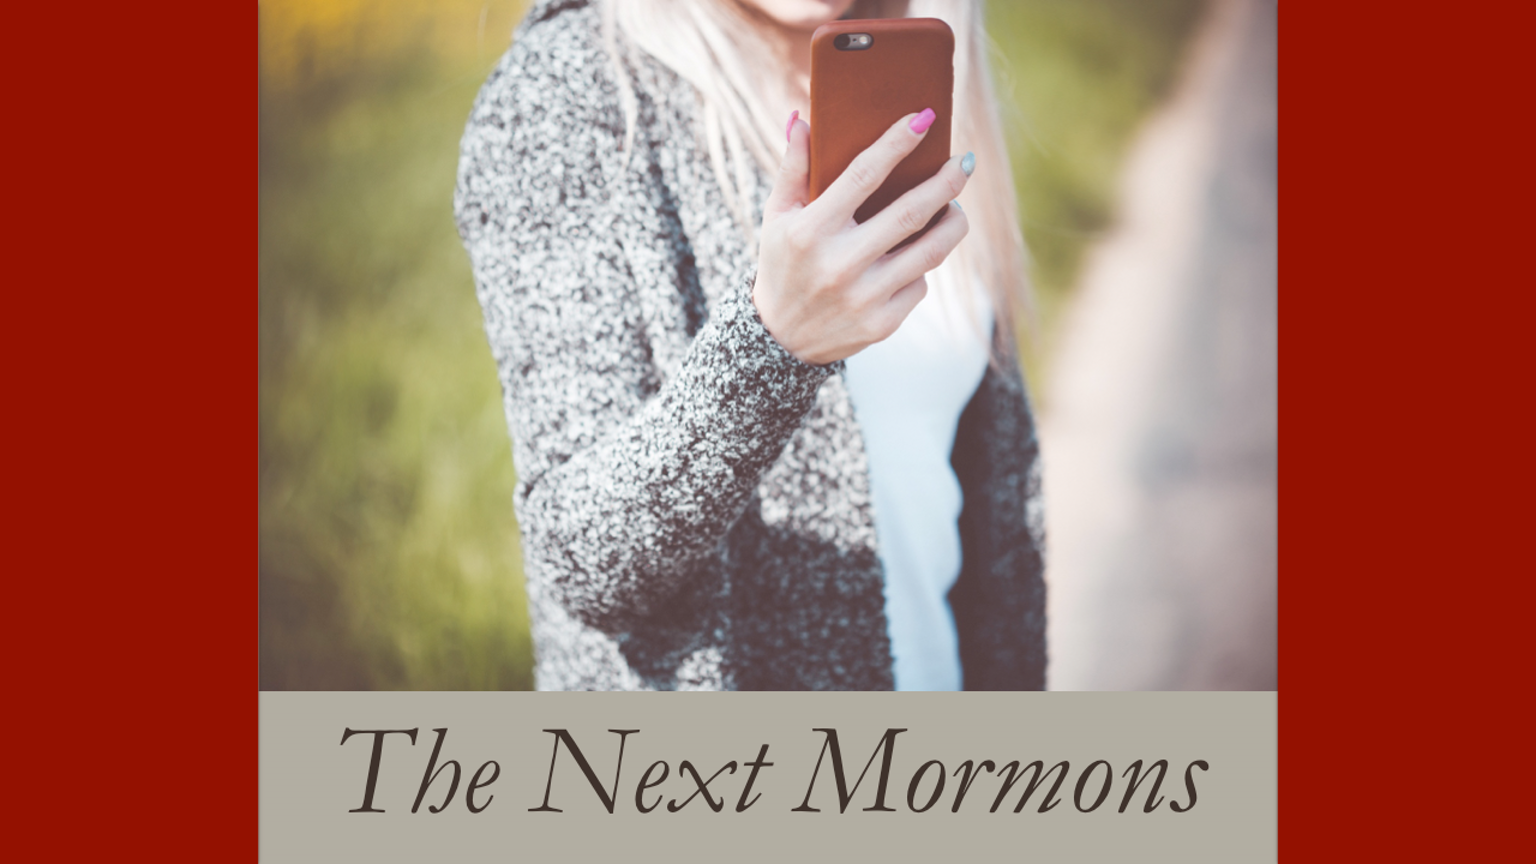 I'm writing a research paper on Mormonism. How should I explain the origin/history of it?